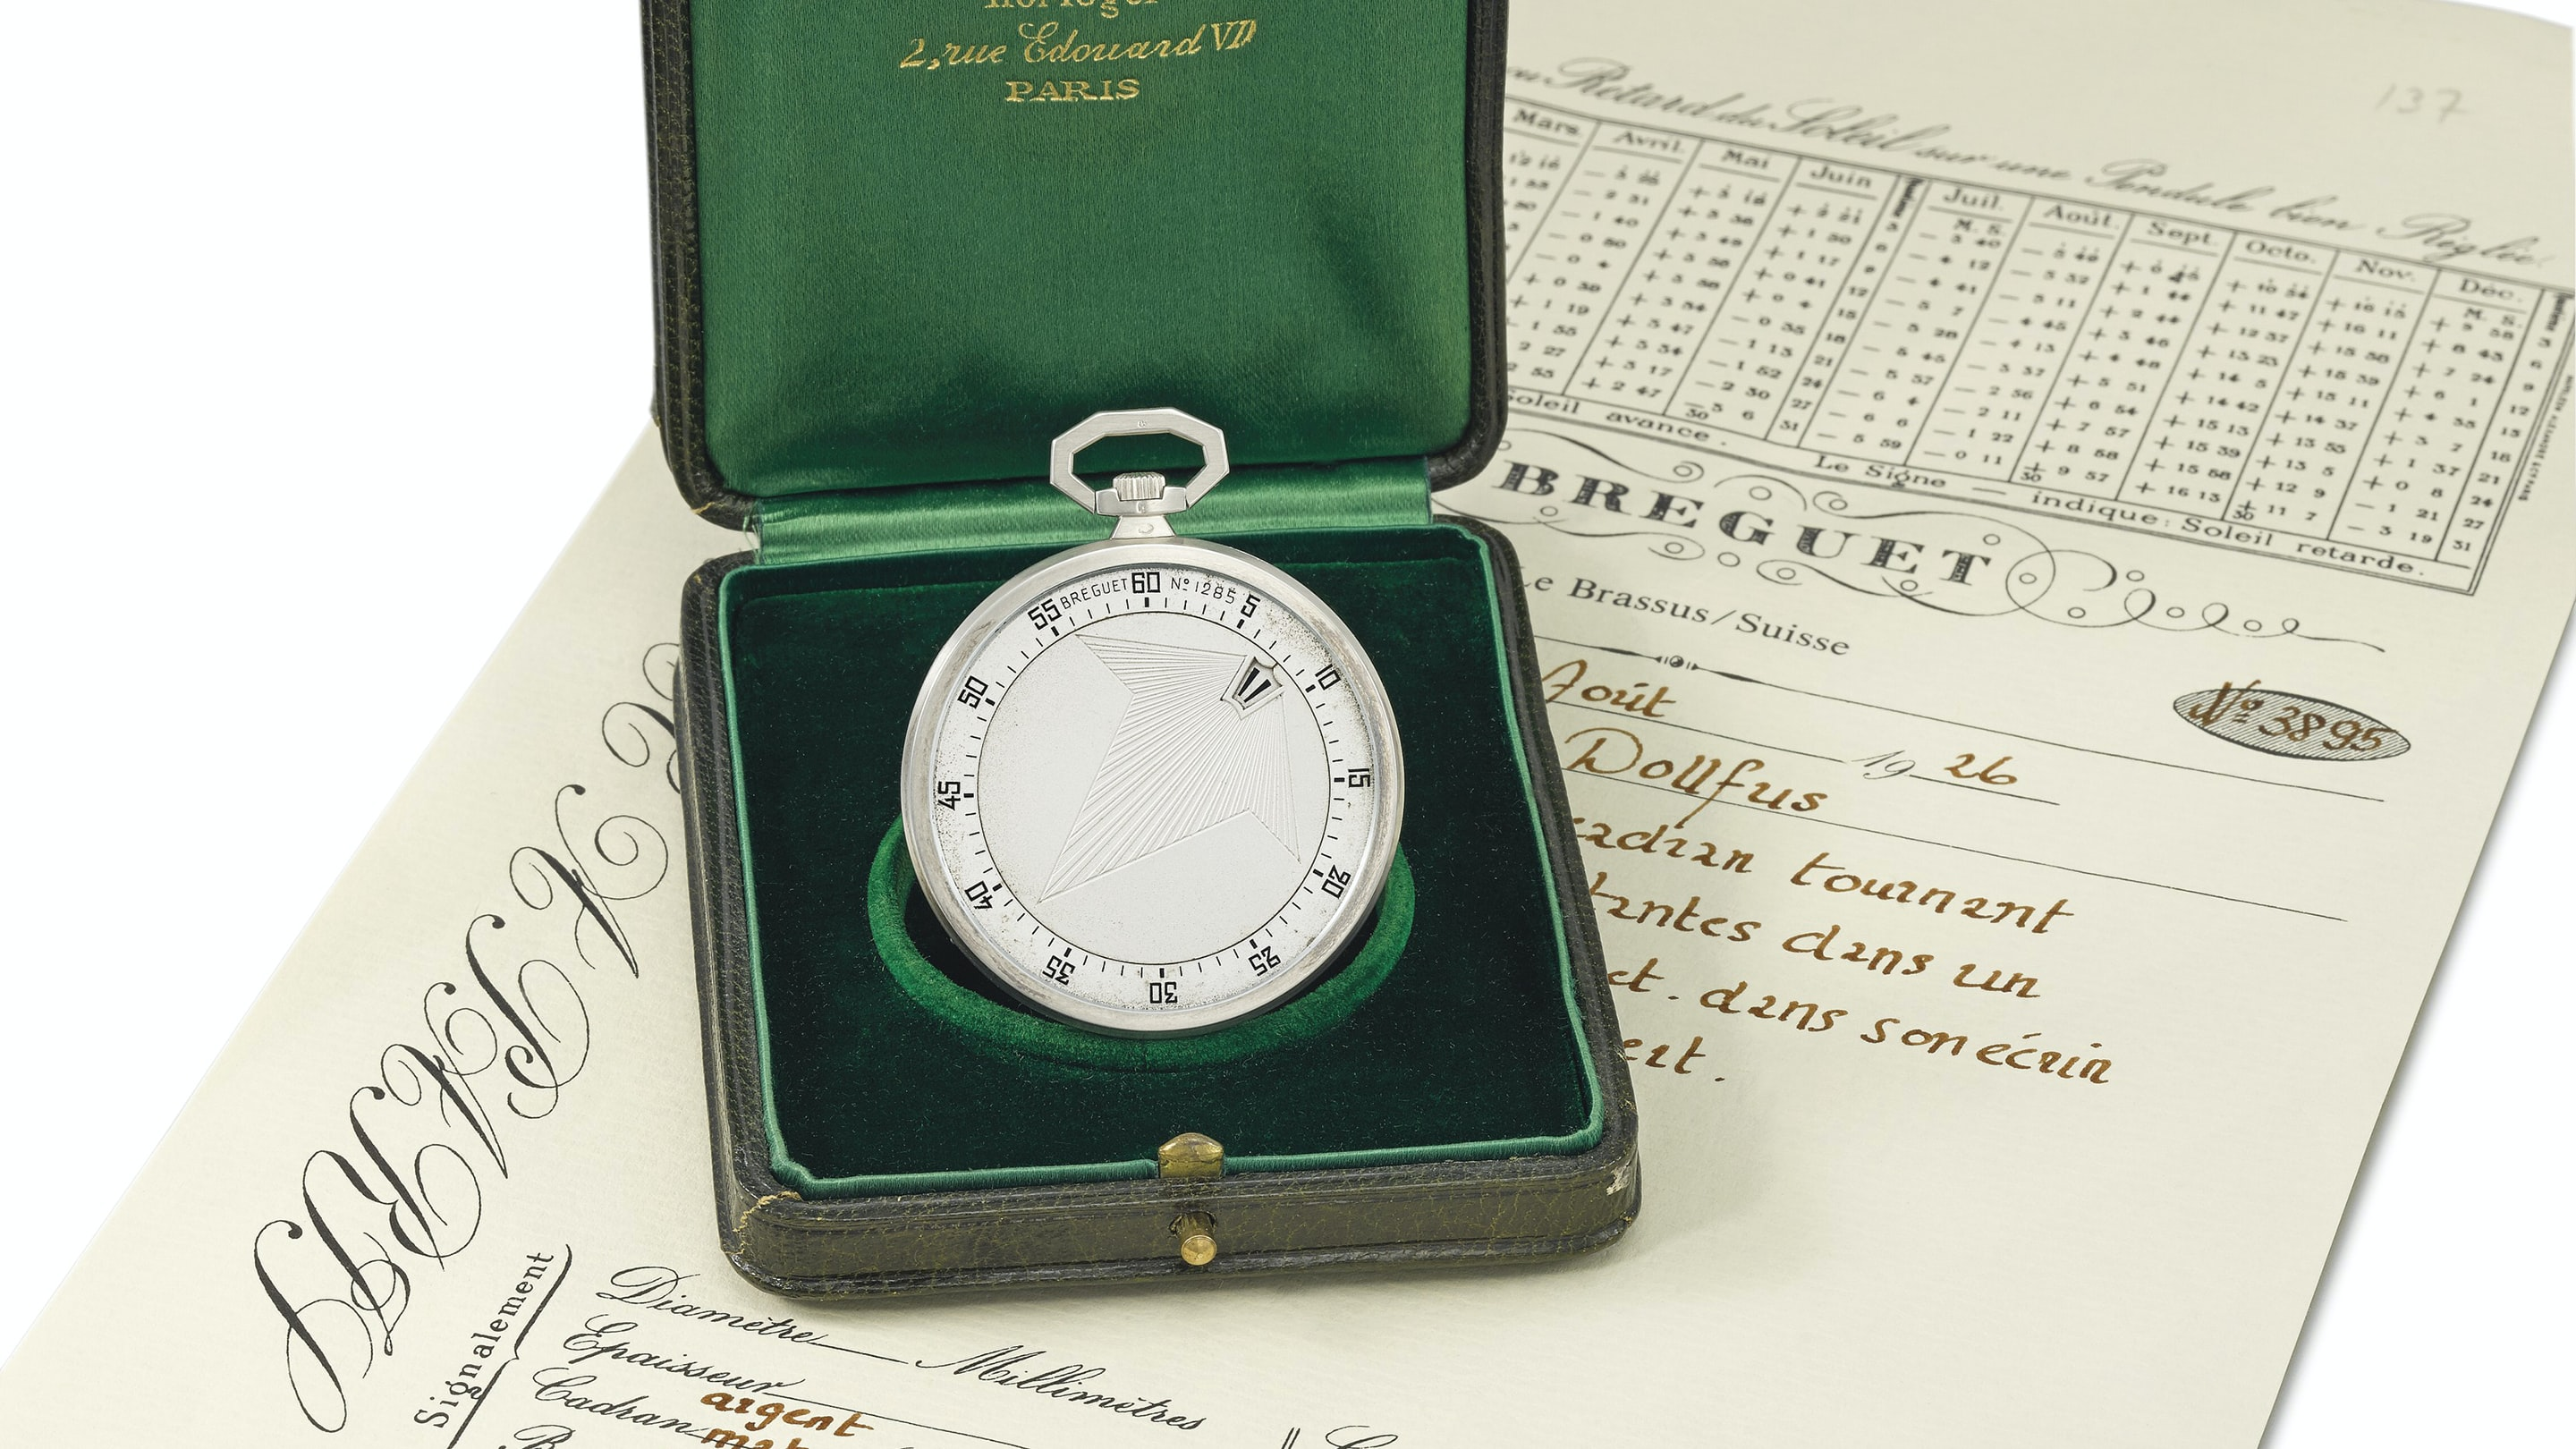 Found: A Breguet Pocket Watch, A Renoir, And The Mystery Of One Of The Greatest Breguet Collectors